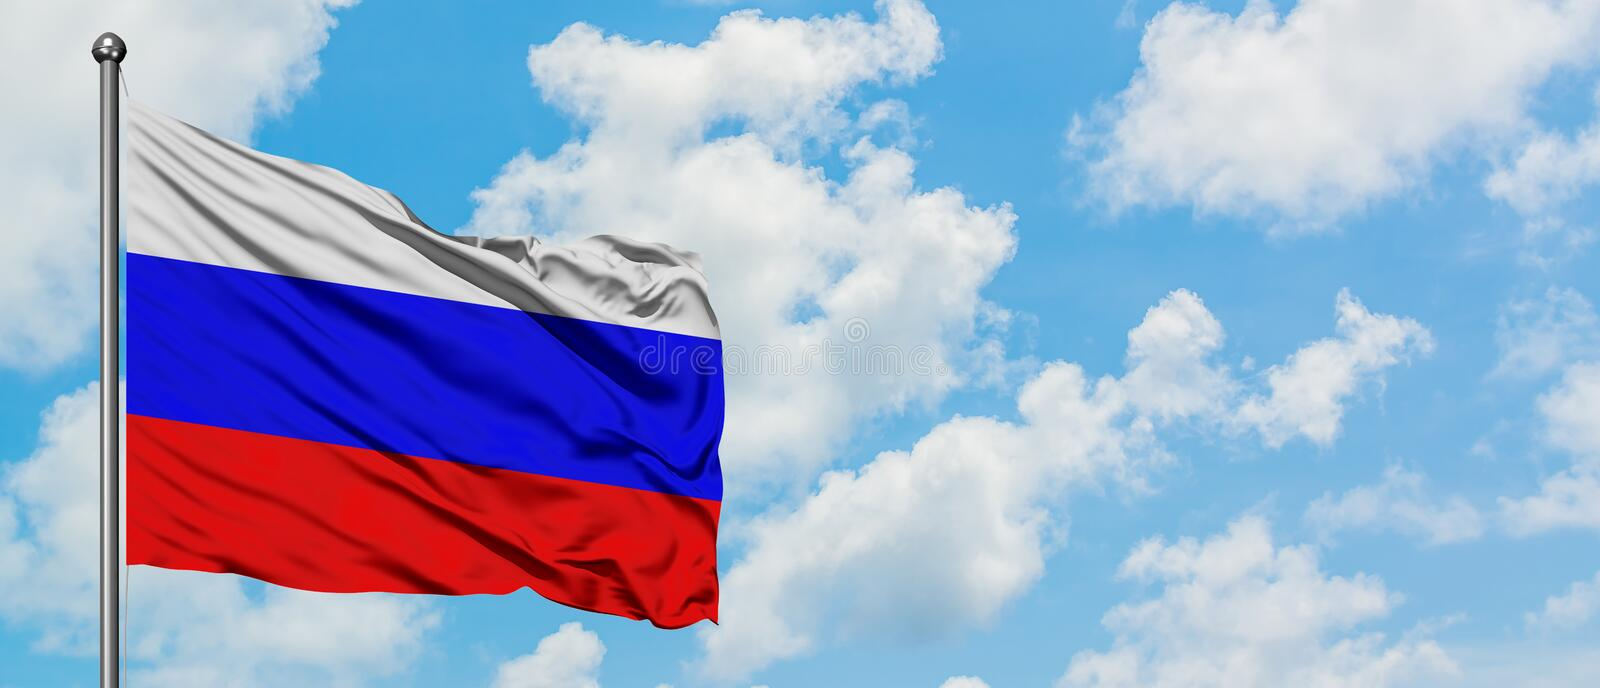 Russia flag waving in the wind against white cloudy blue sky. Diplomacy concept, international relations.  royalty free stock images